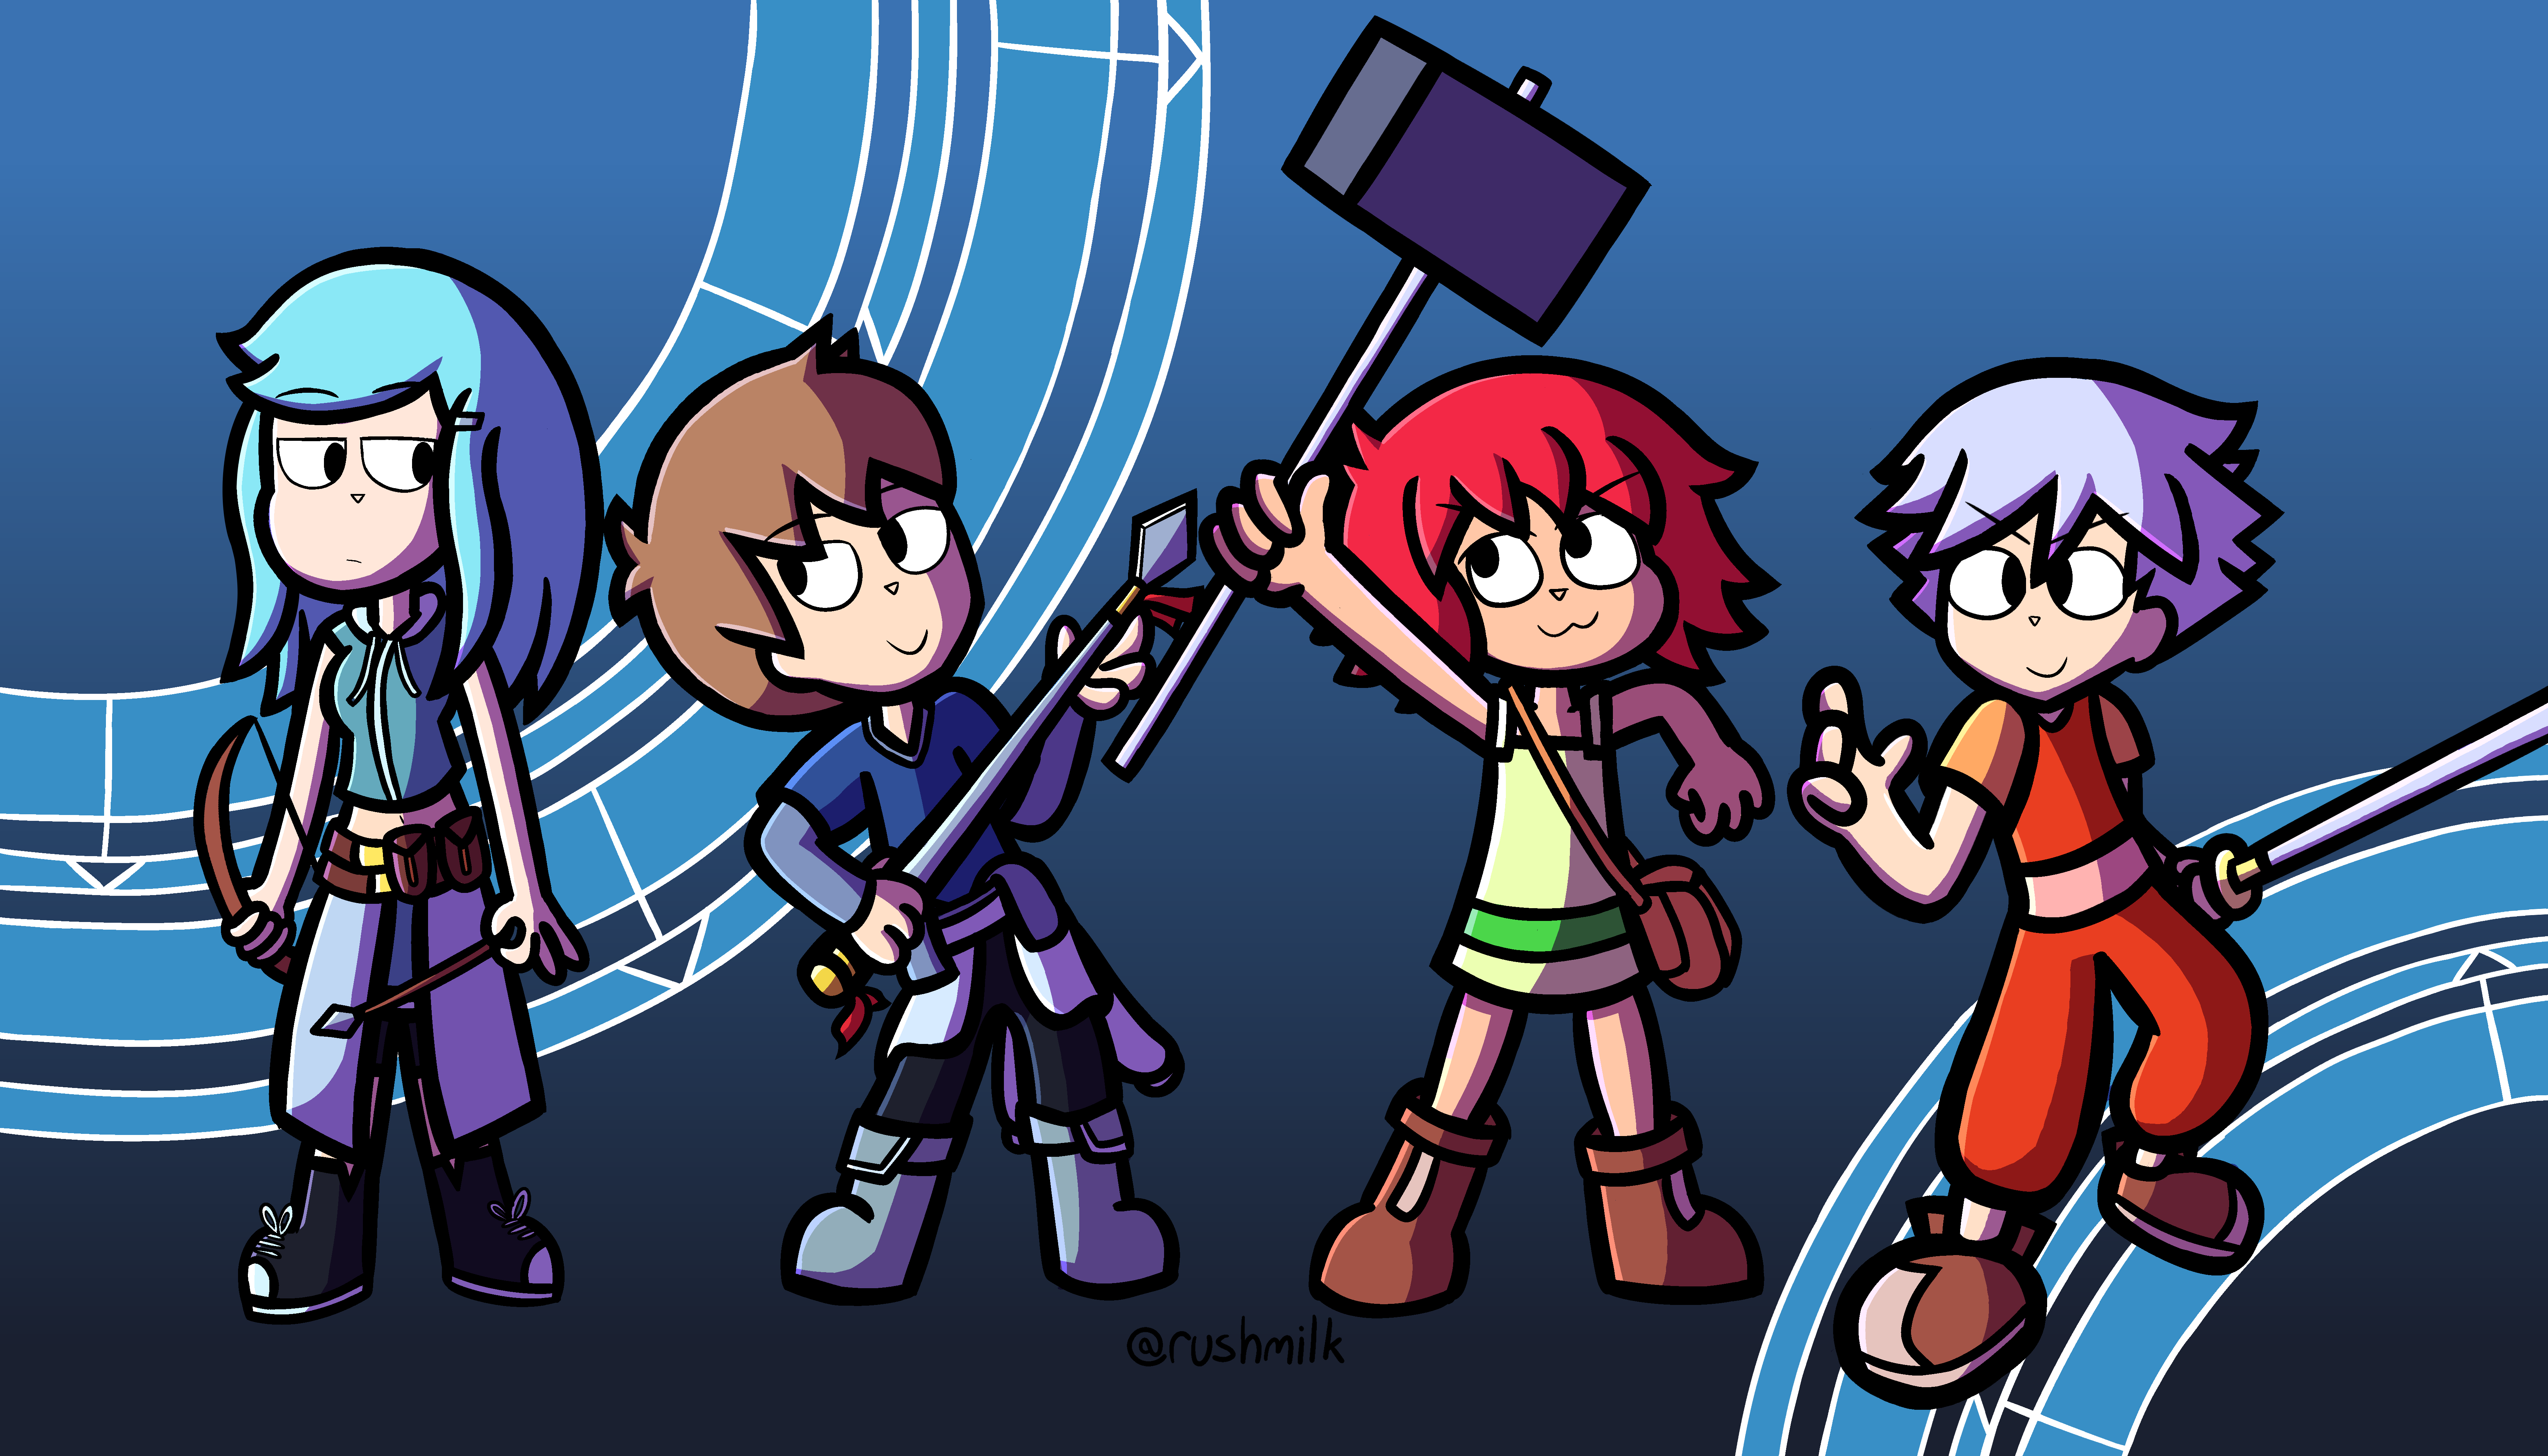 Crystal Story Crew